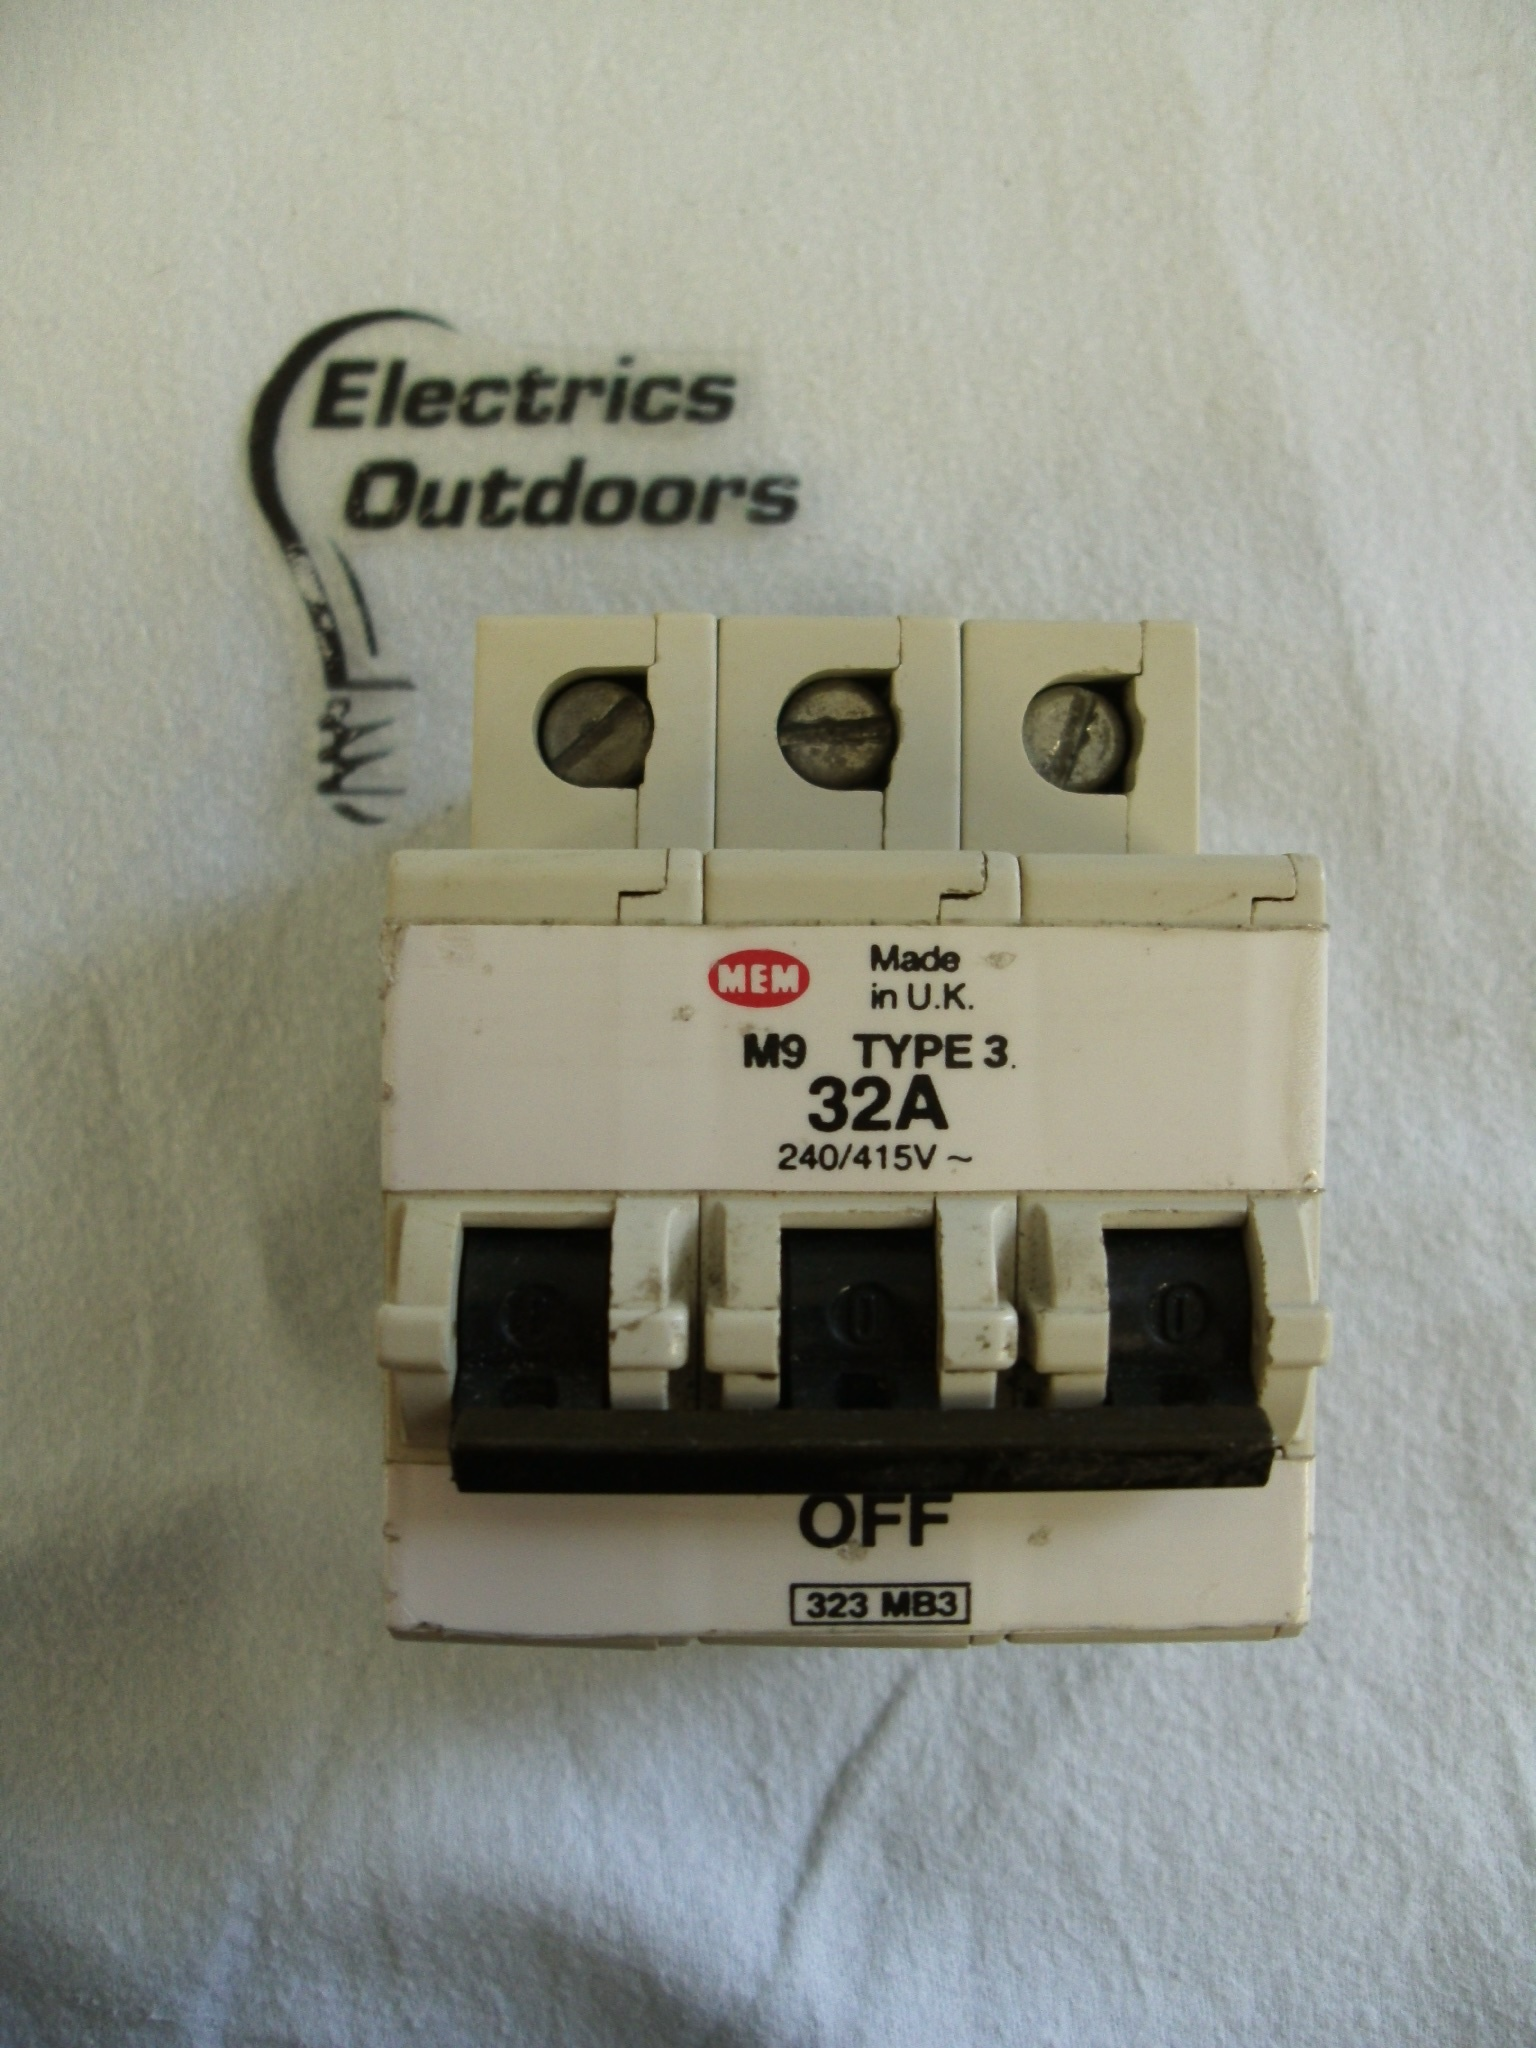 Circuit Breaker Specialists 20a 400v Onoff Mcb With Cover Buy Mem 32 Amp Type 3 M9 Triple Pole 240 415v 323 Mb3